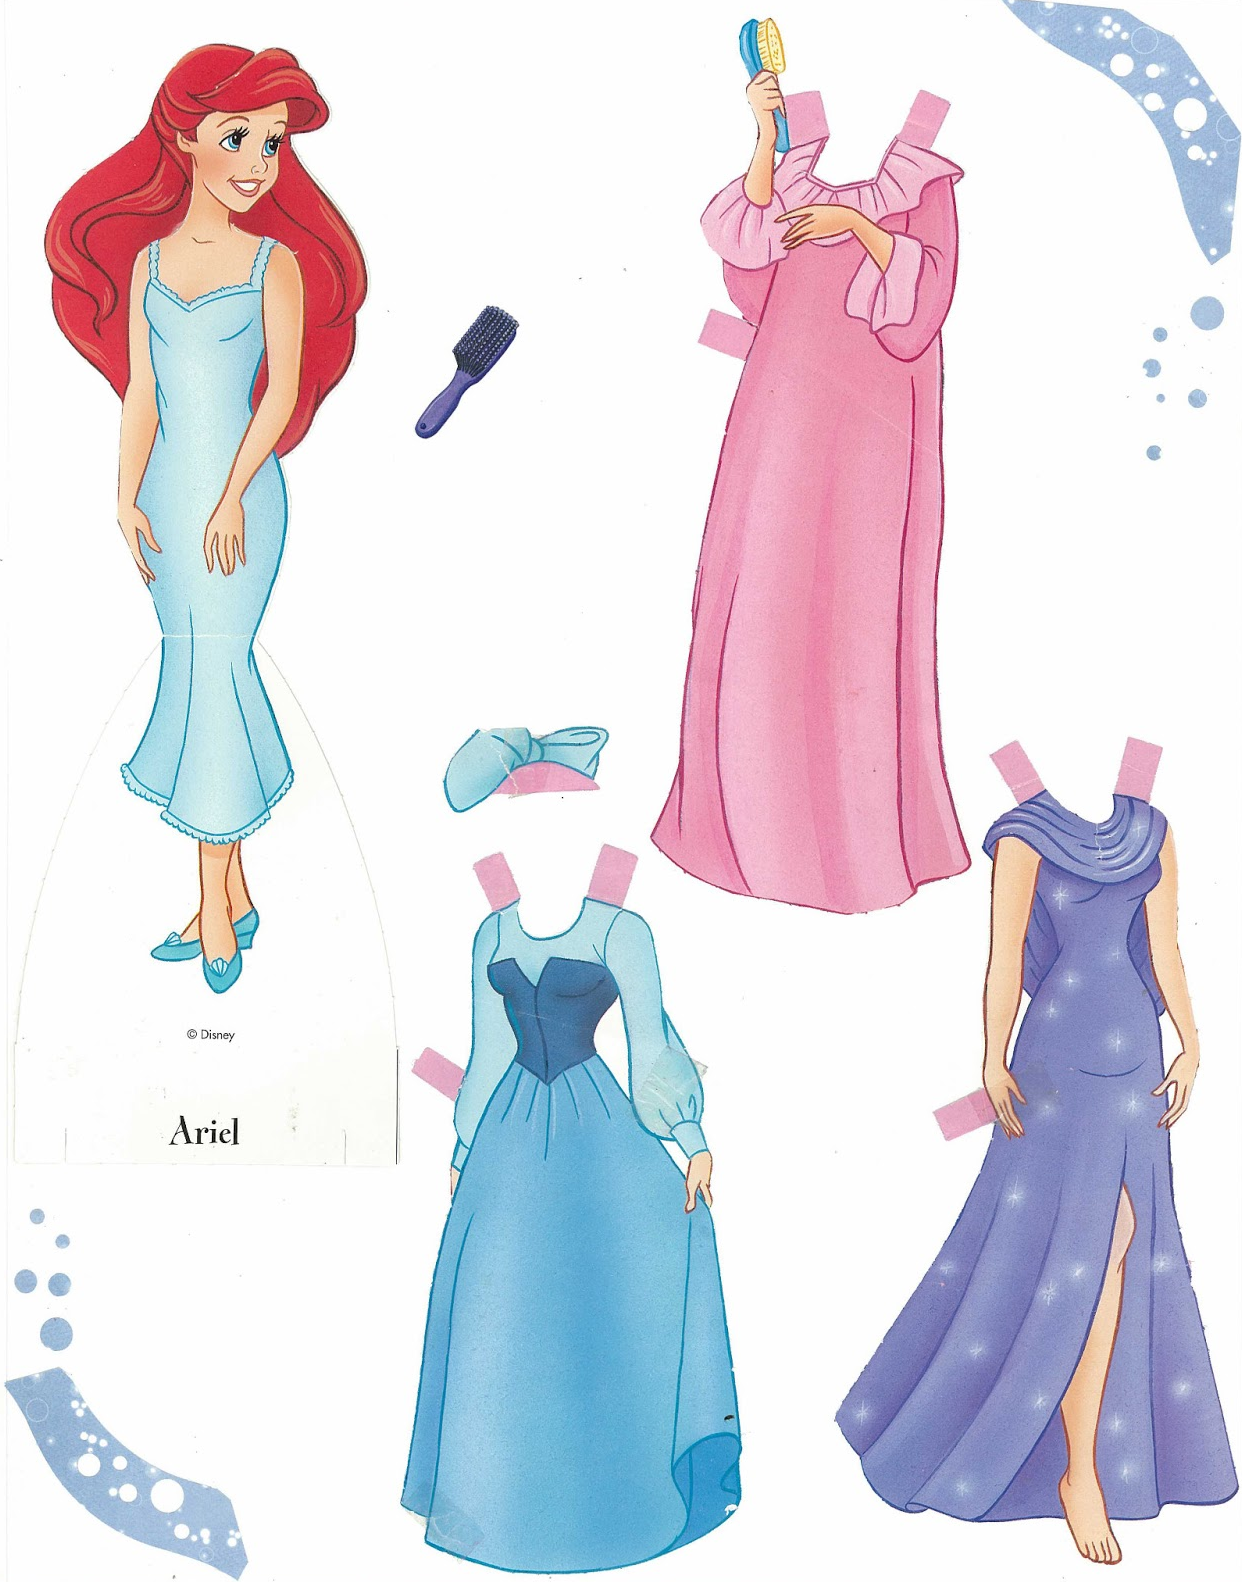 Disney Ariel Little Mermaid Dress Up Paper Doll with Accessories